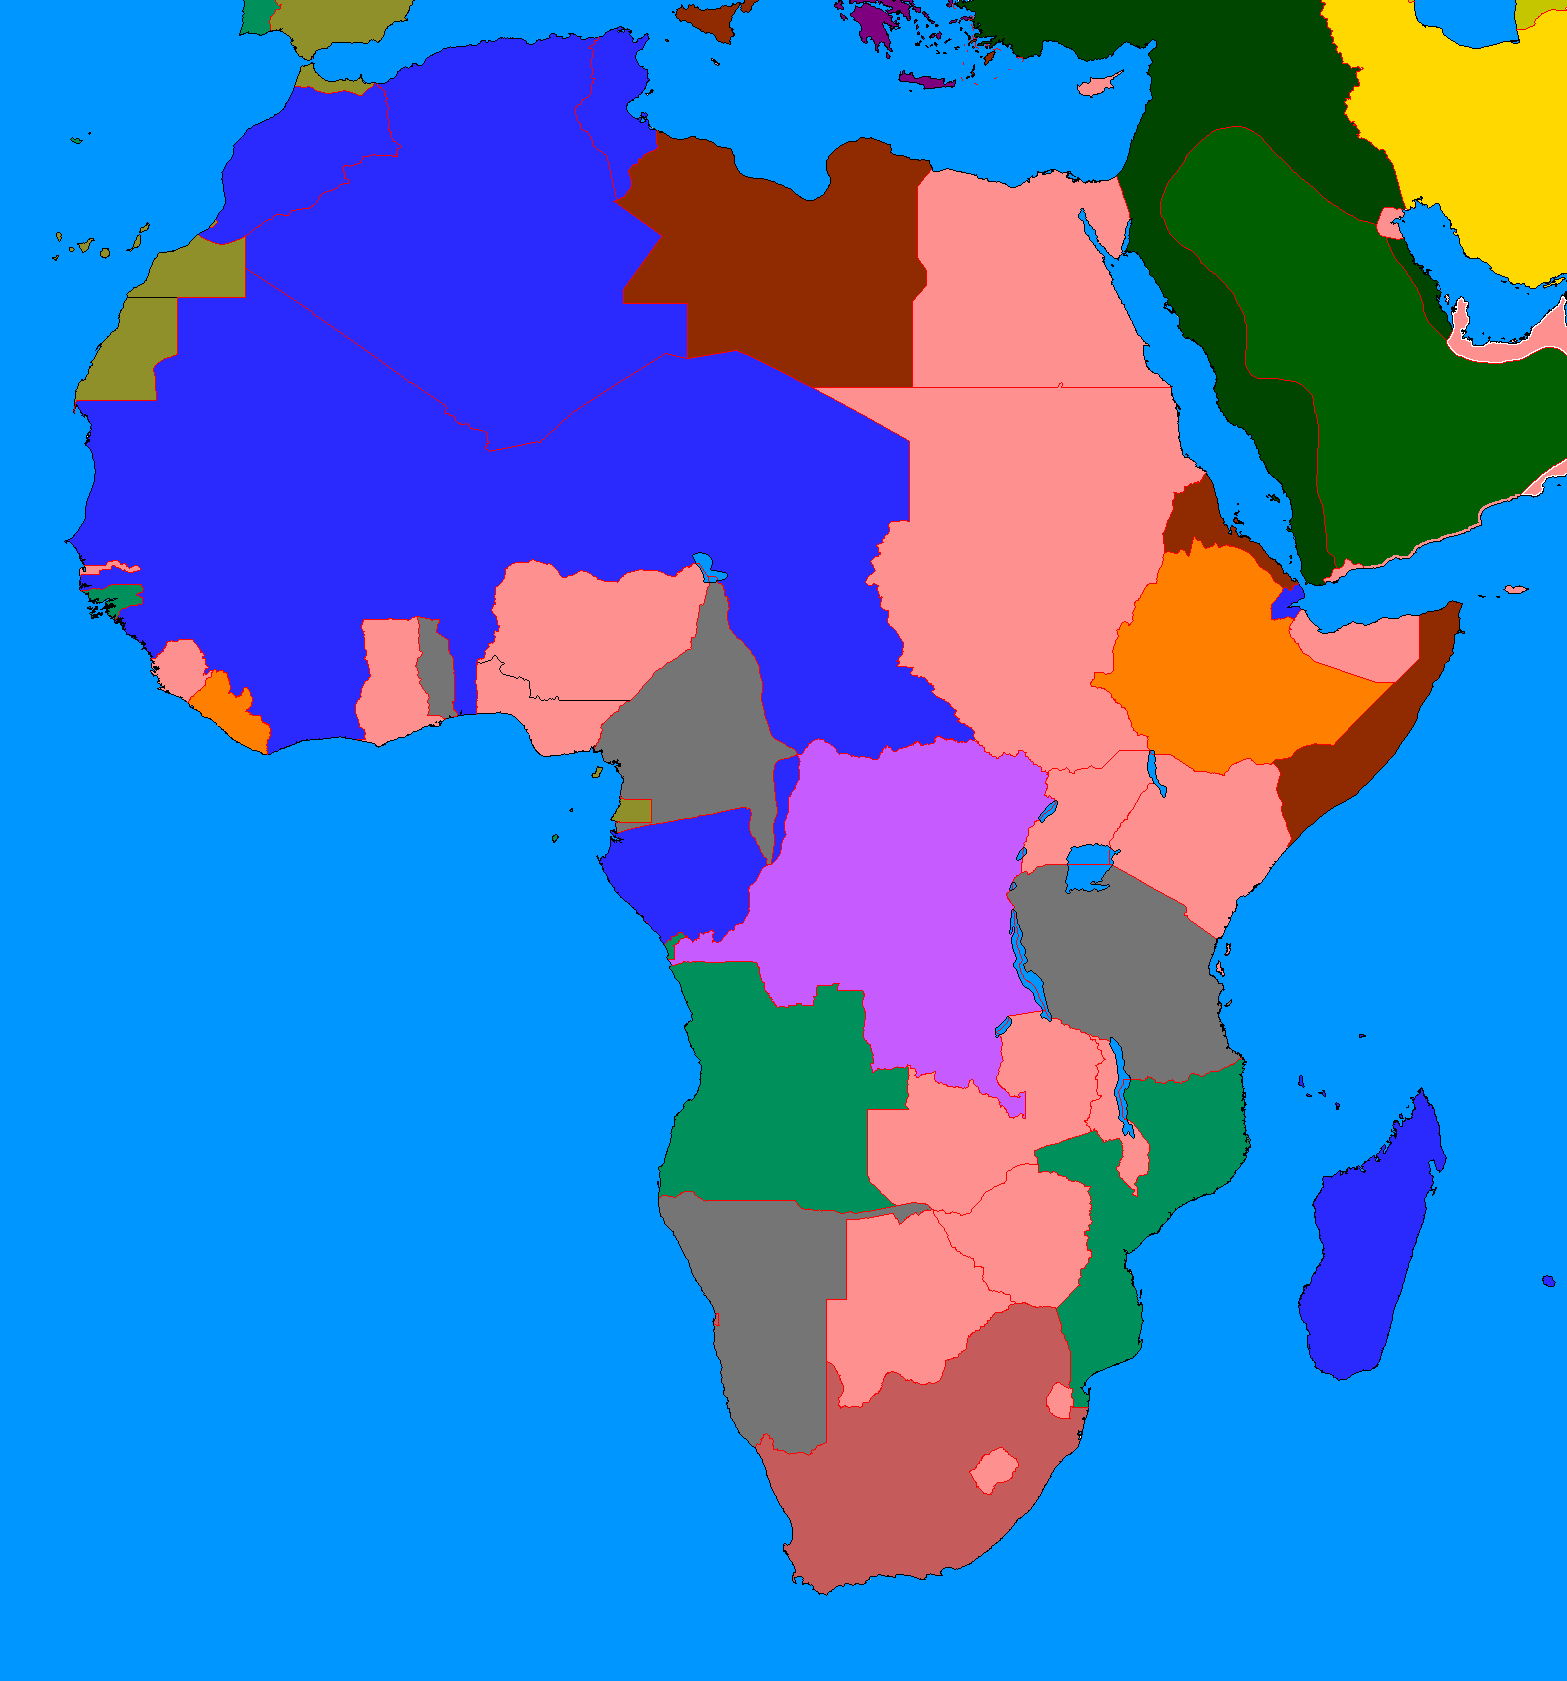 how the european settlers further oppressed the native africans Recognize the idea of worldview as a way of understanding/viewing cultural difference understand key differences between native american and european worldview vis a vis time, property, land, communication, and social/political relations and identify how these differences shaped interactions.